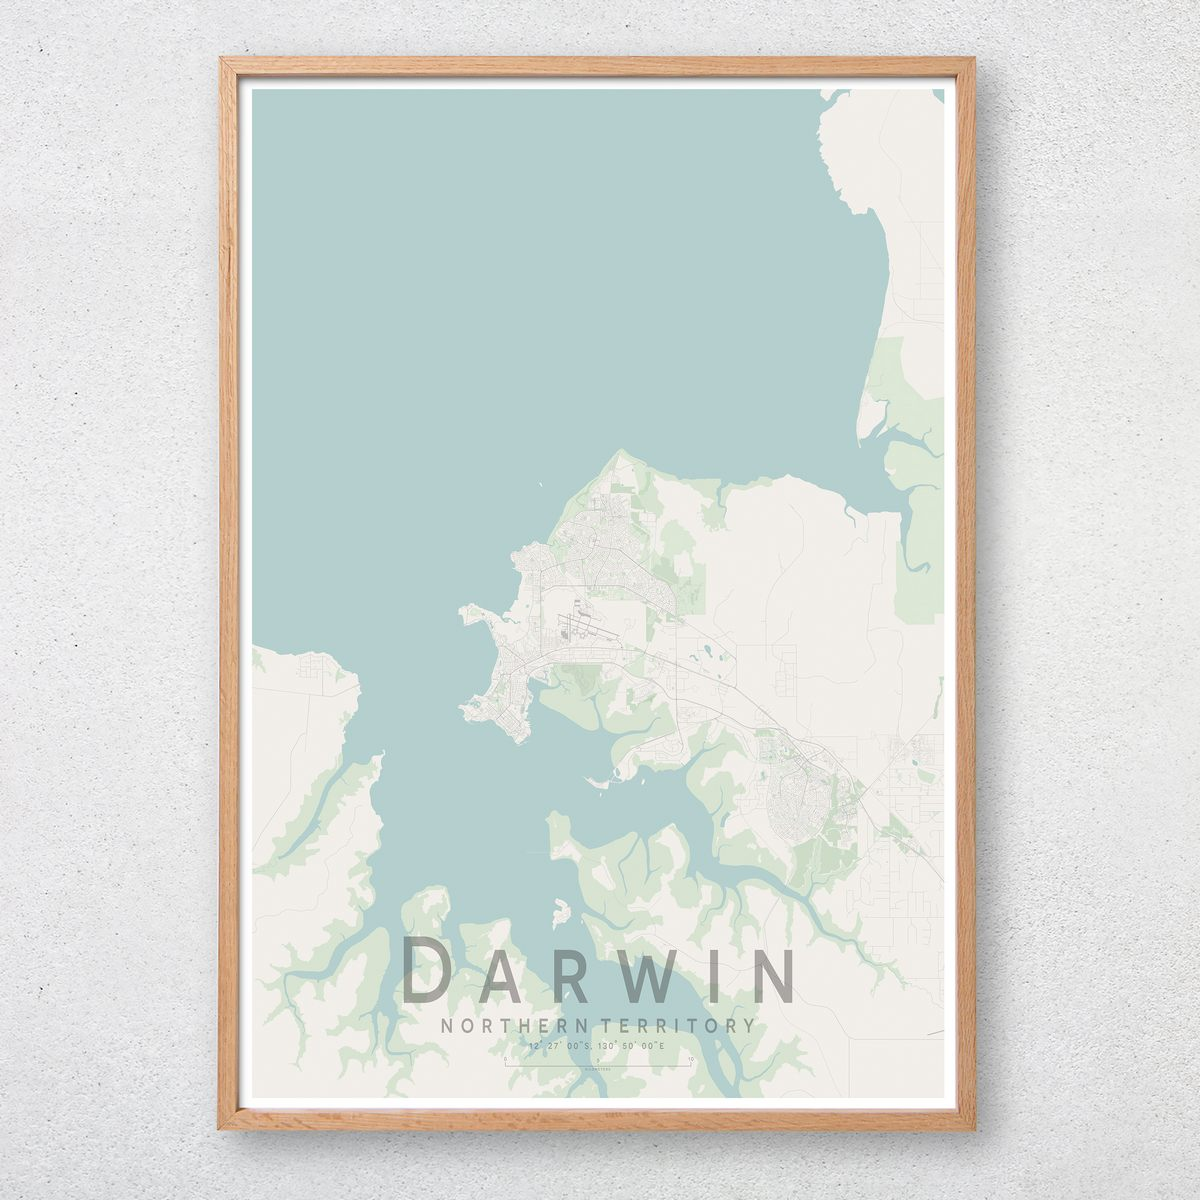 Darwin Map Of Australia.Details About Darwin Map Print Australia Wall Art Poster City Map Wall Decor A3 A2 A1